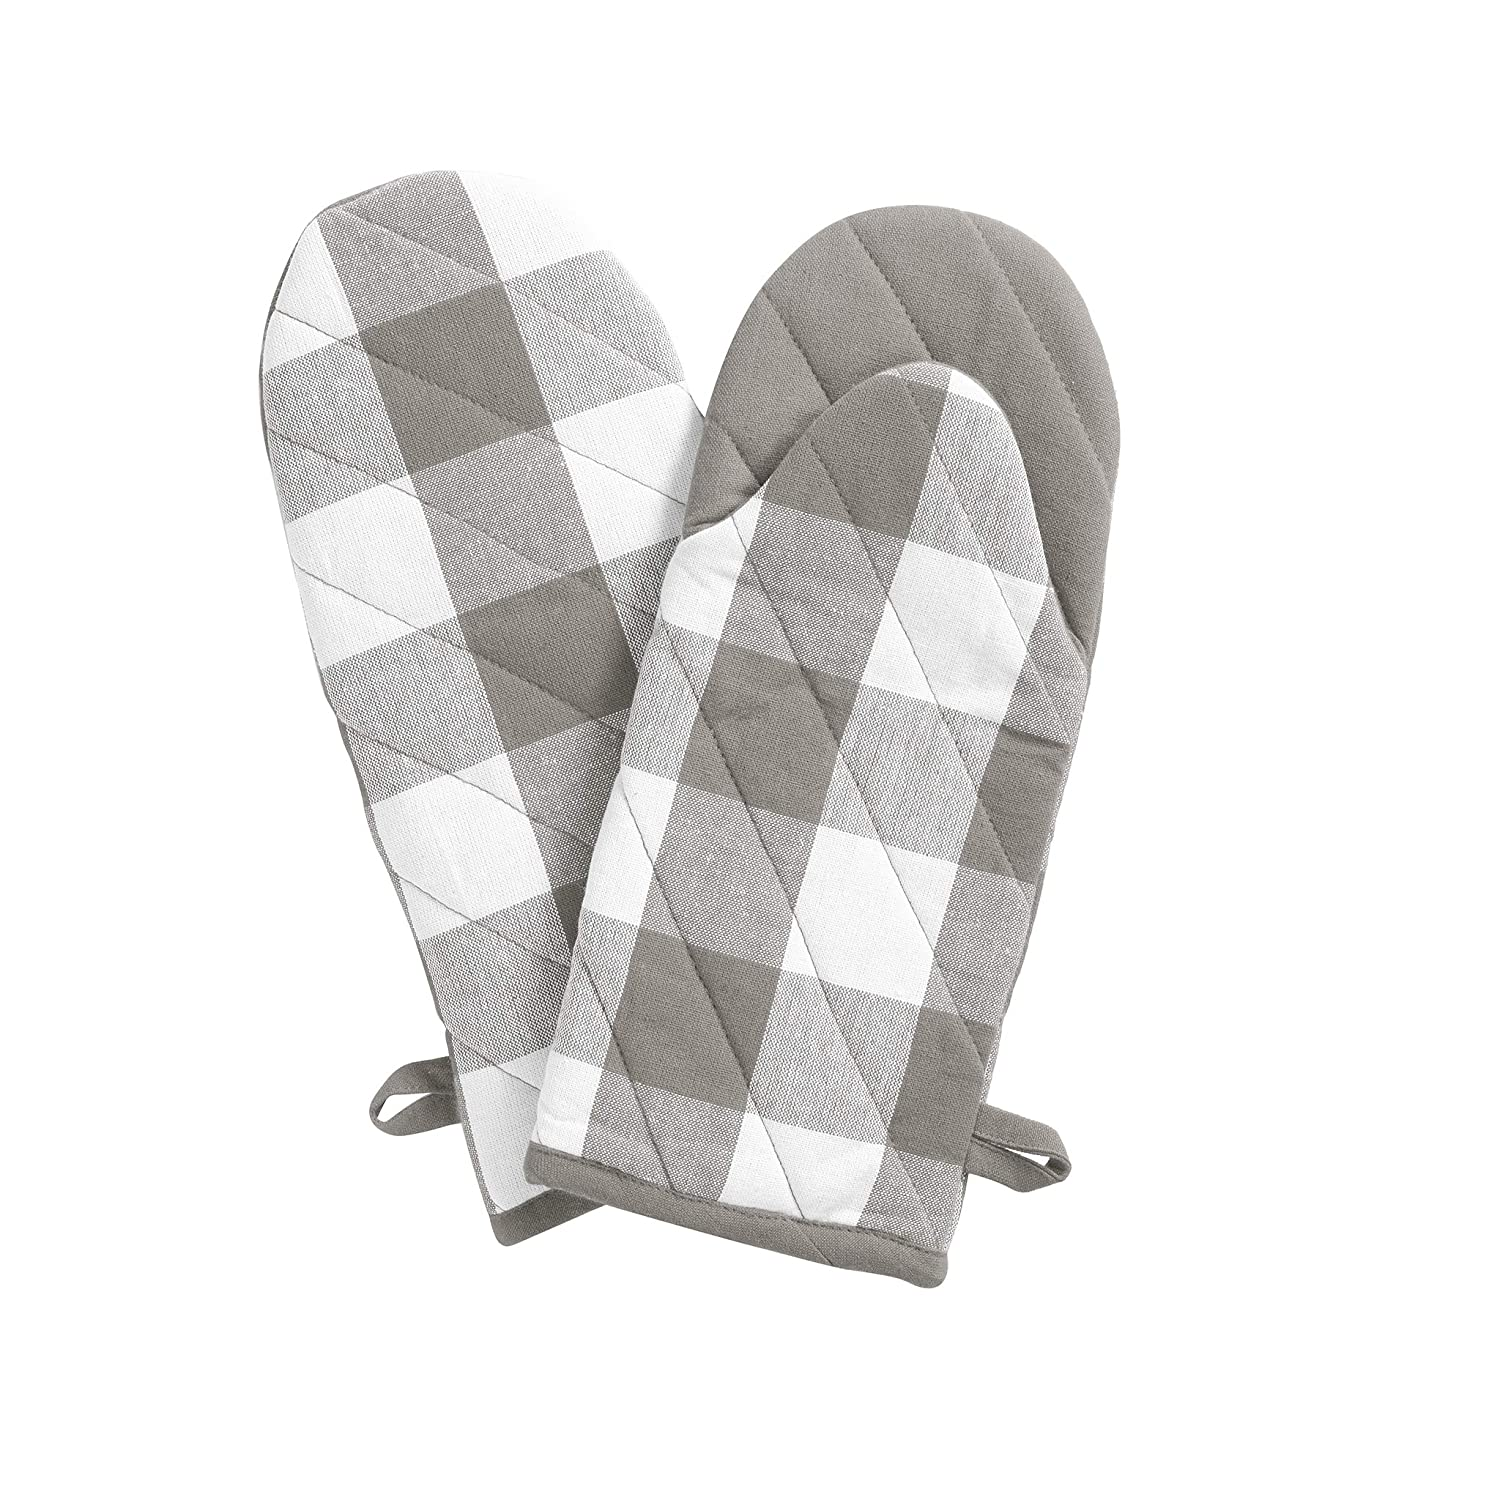 "Elrene Home Fashions Farmhouse Living Buffalo Check Oven Mitt Pair, 13"" x 6"", Gray/White 2"